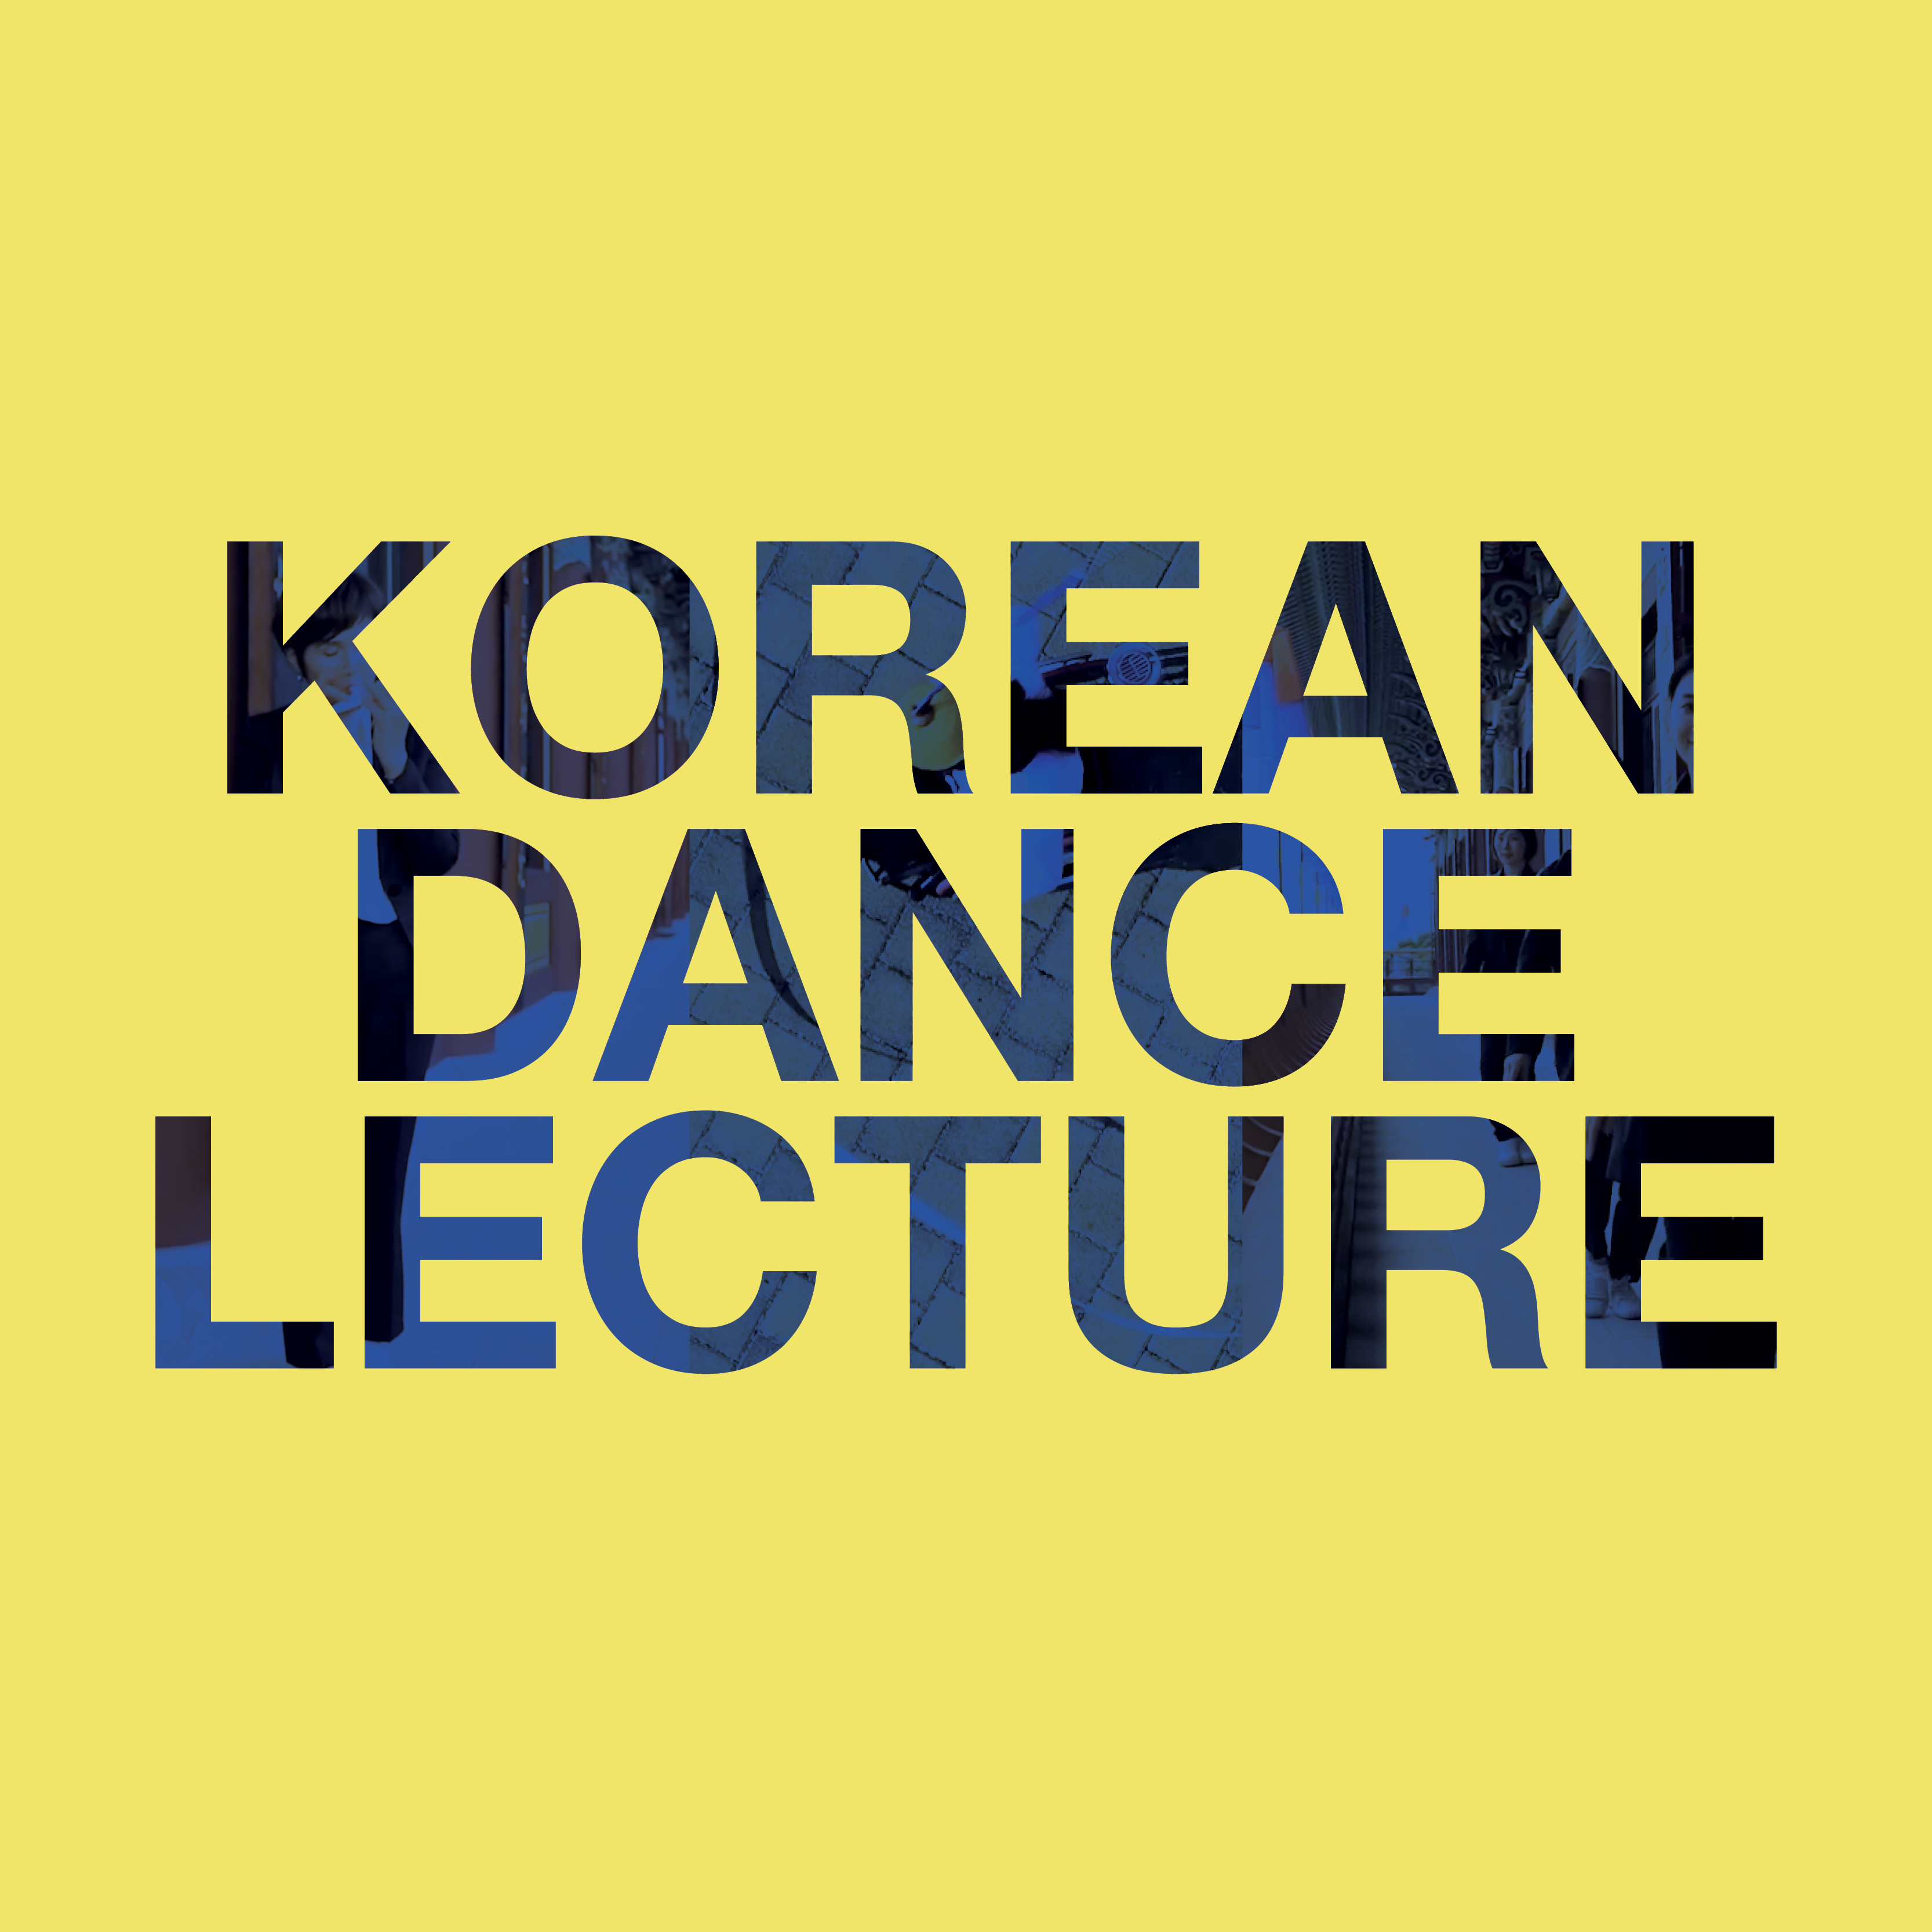 Korean Dance Lecture and Film Screening